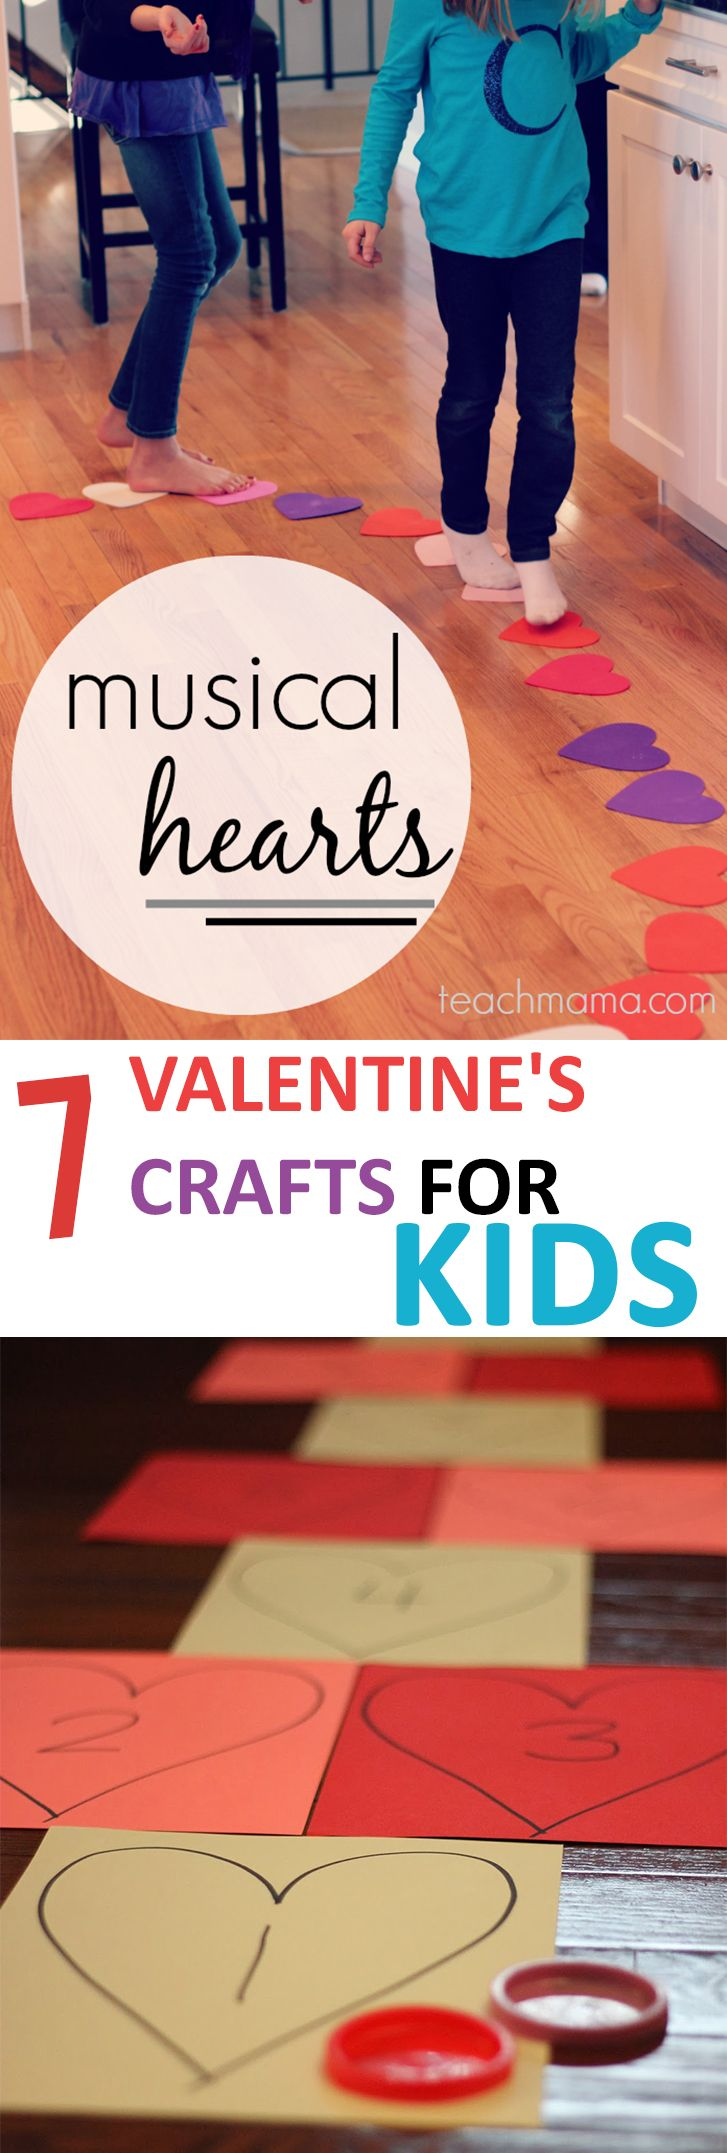 Here are 7 fun craft ideas to do with your kids for Valentine's Day.